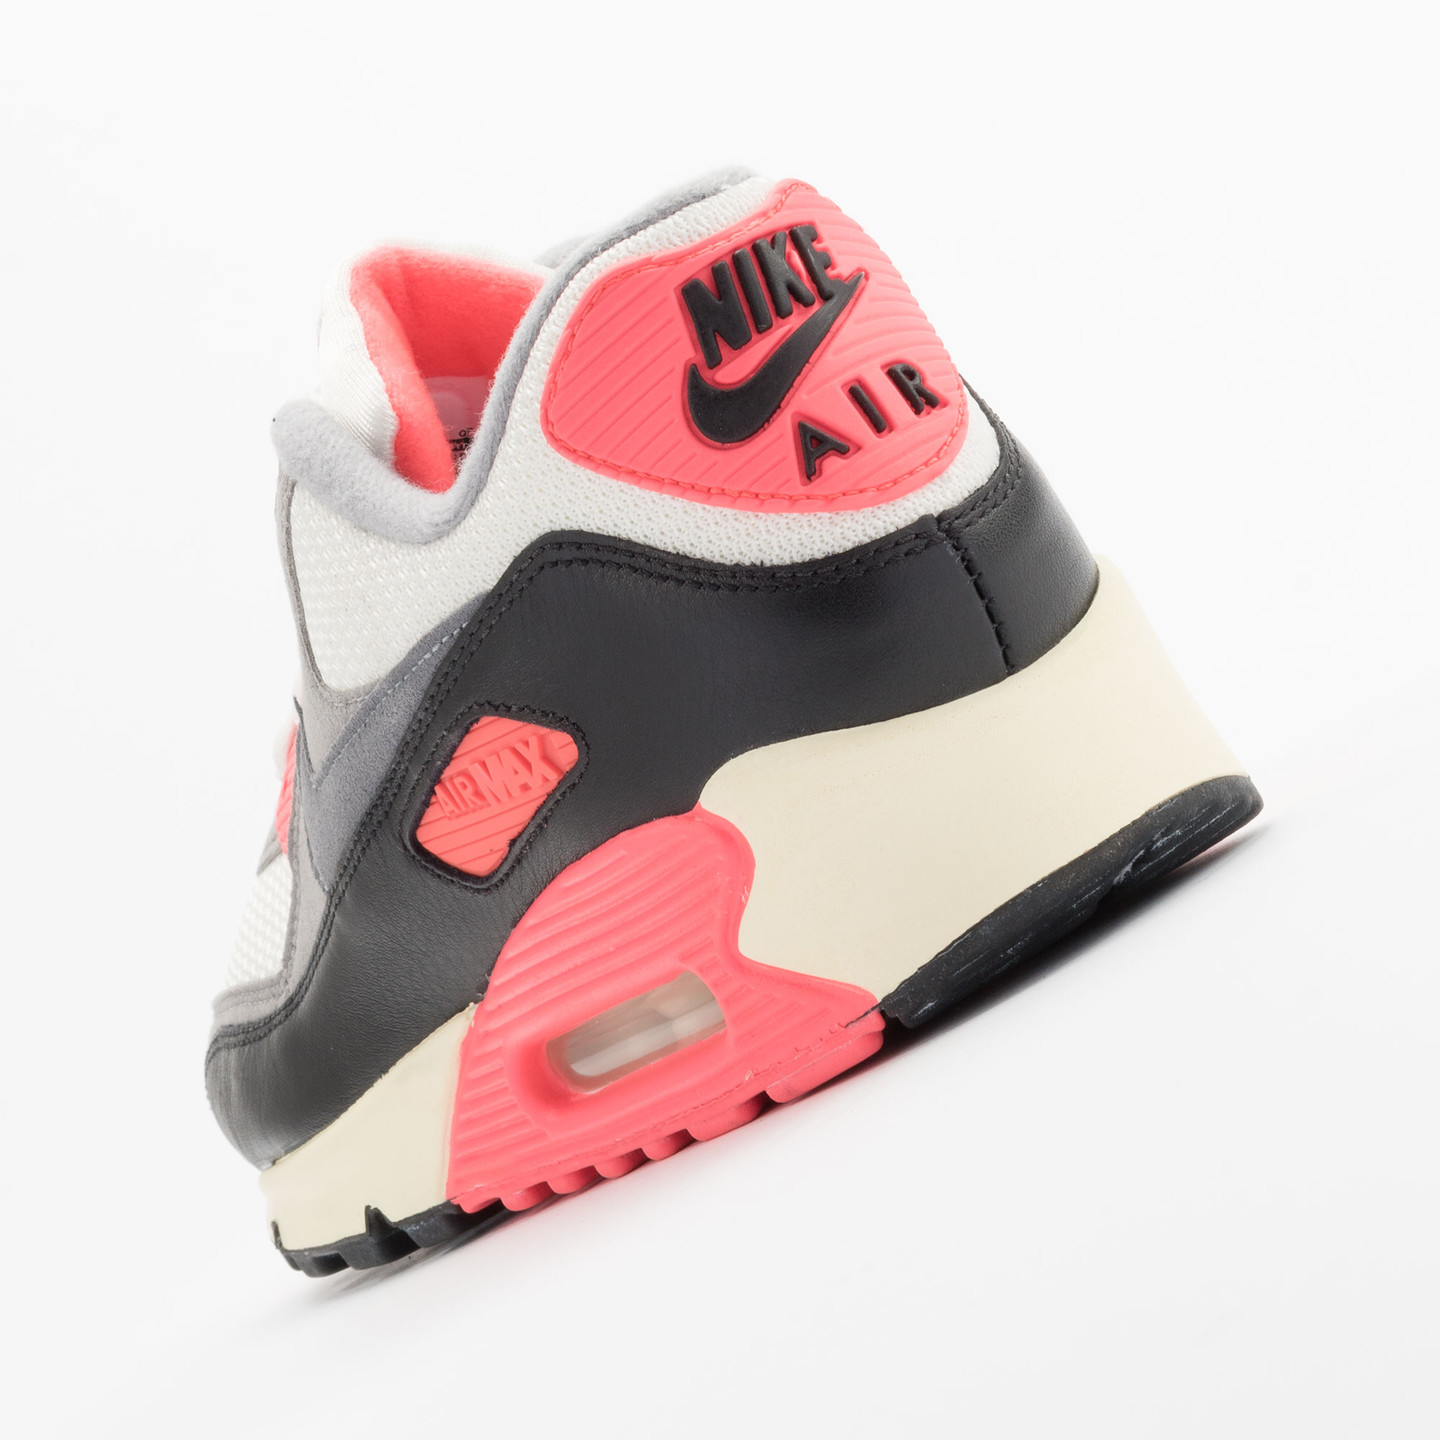 Nike Air Max 90 OG Vintage Infrared Sail/Cool Grey-Mdm Grey-Infrrd 543361-161-42.5